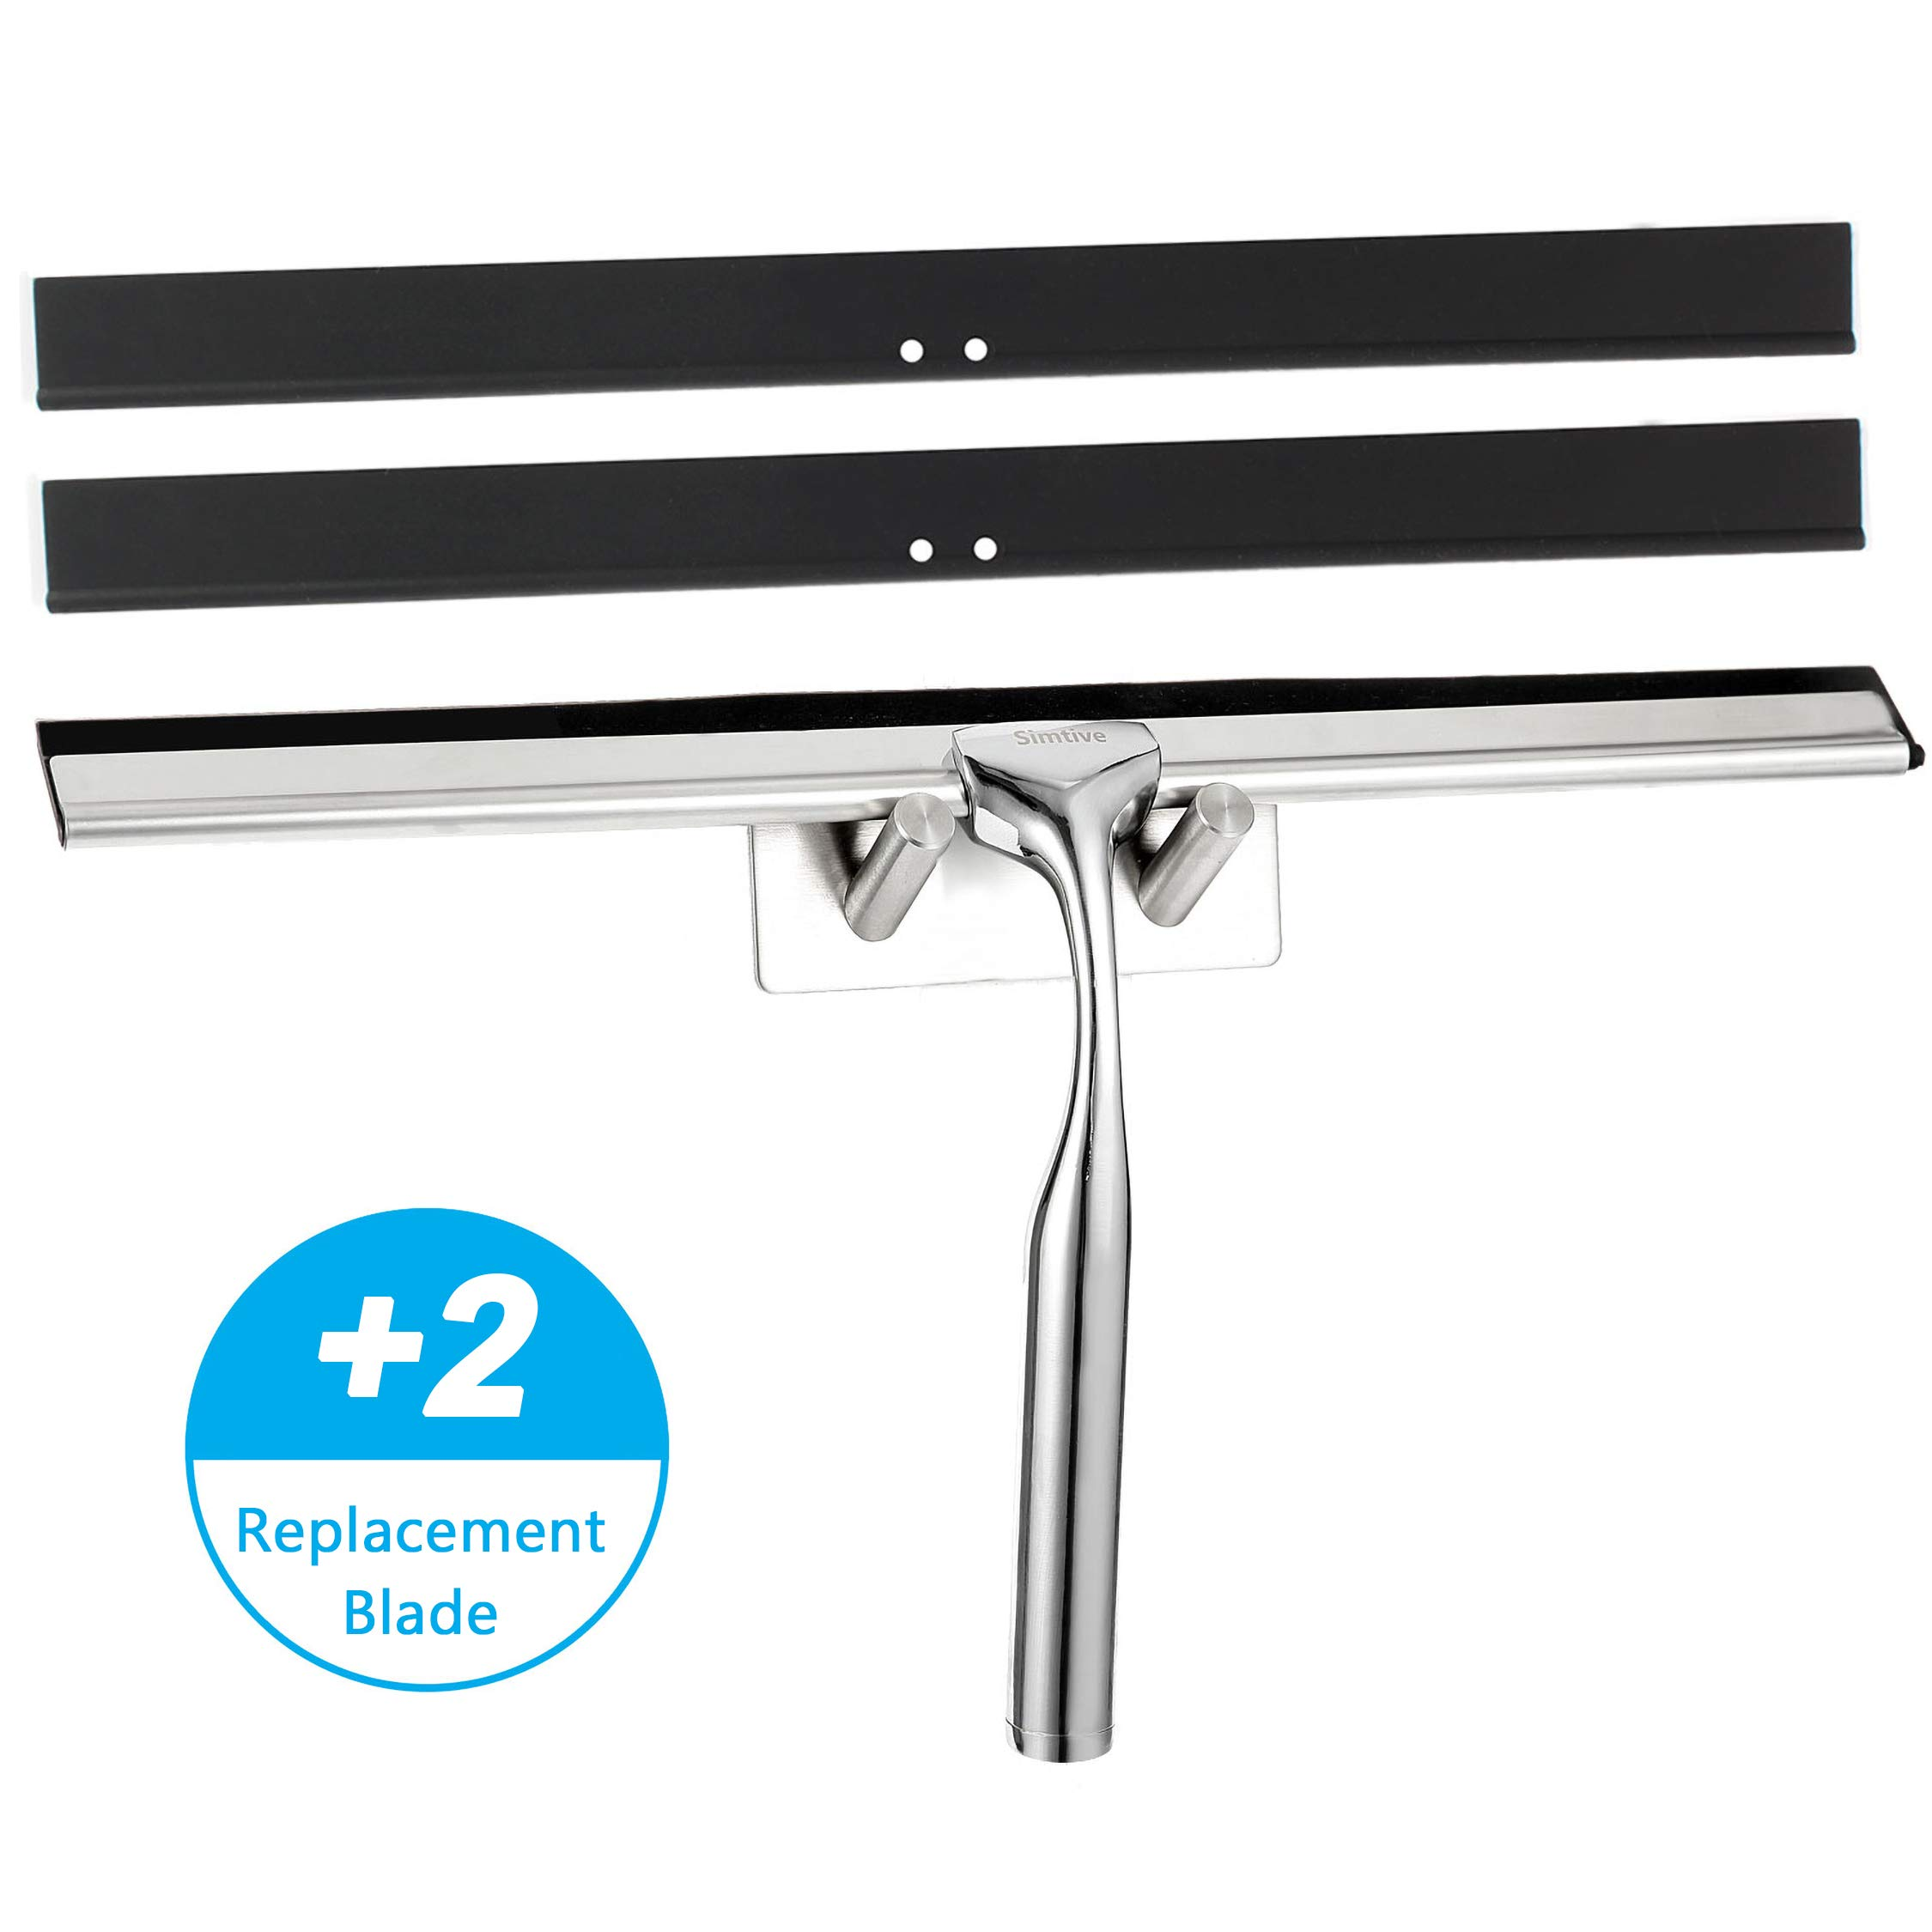 Simtive 12-Inch Shower Squeegee, with 2 Replacement Blades and Adhesive Hook, for Shower Glass Door, Bathroom, Mirror and Window by Simtive